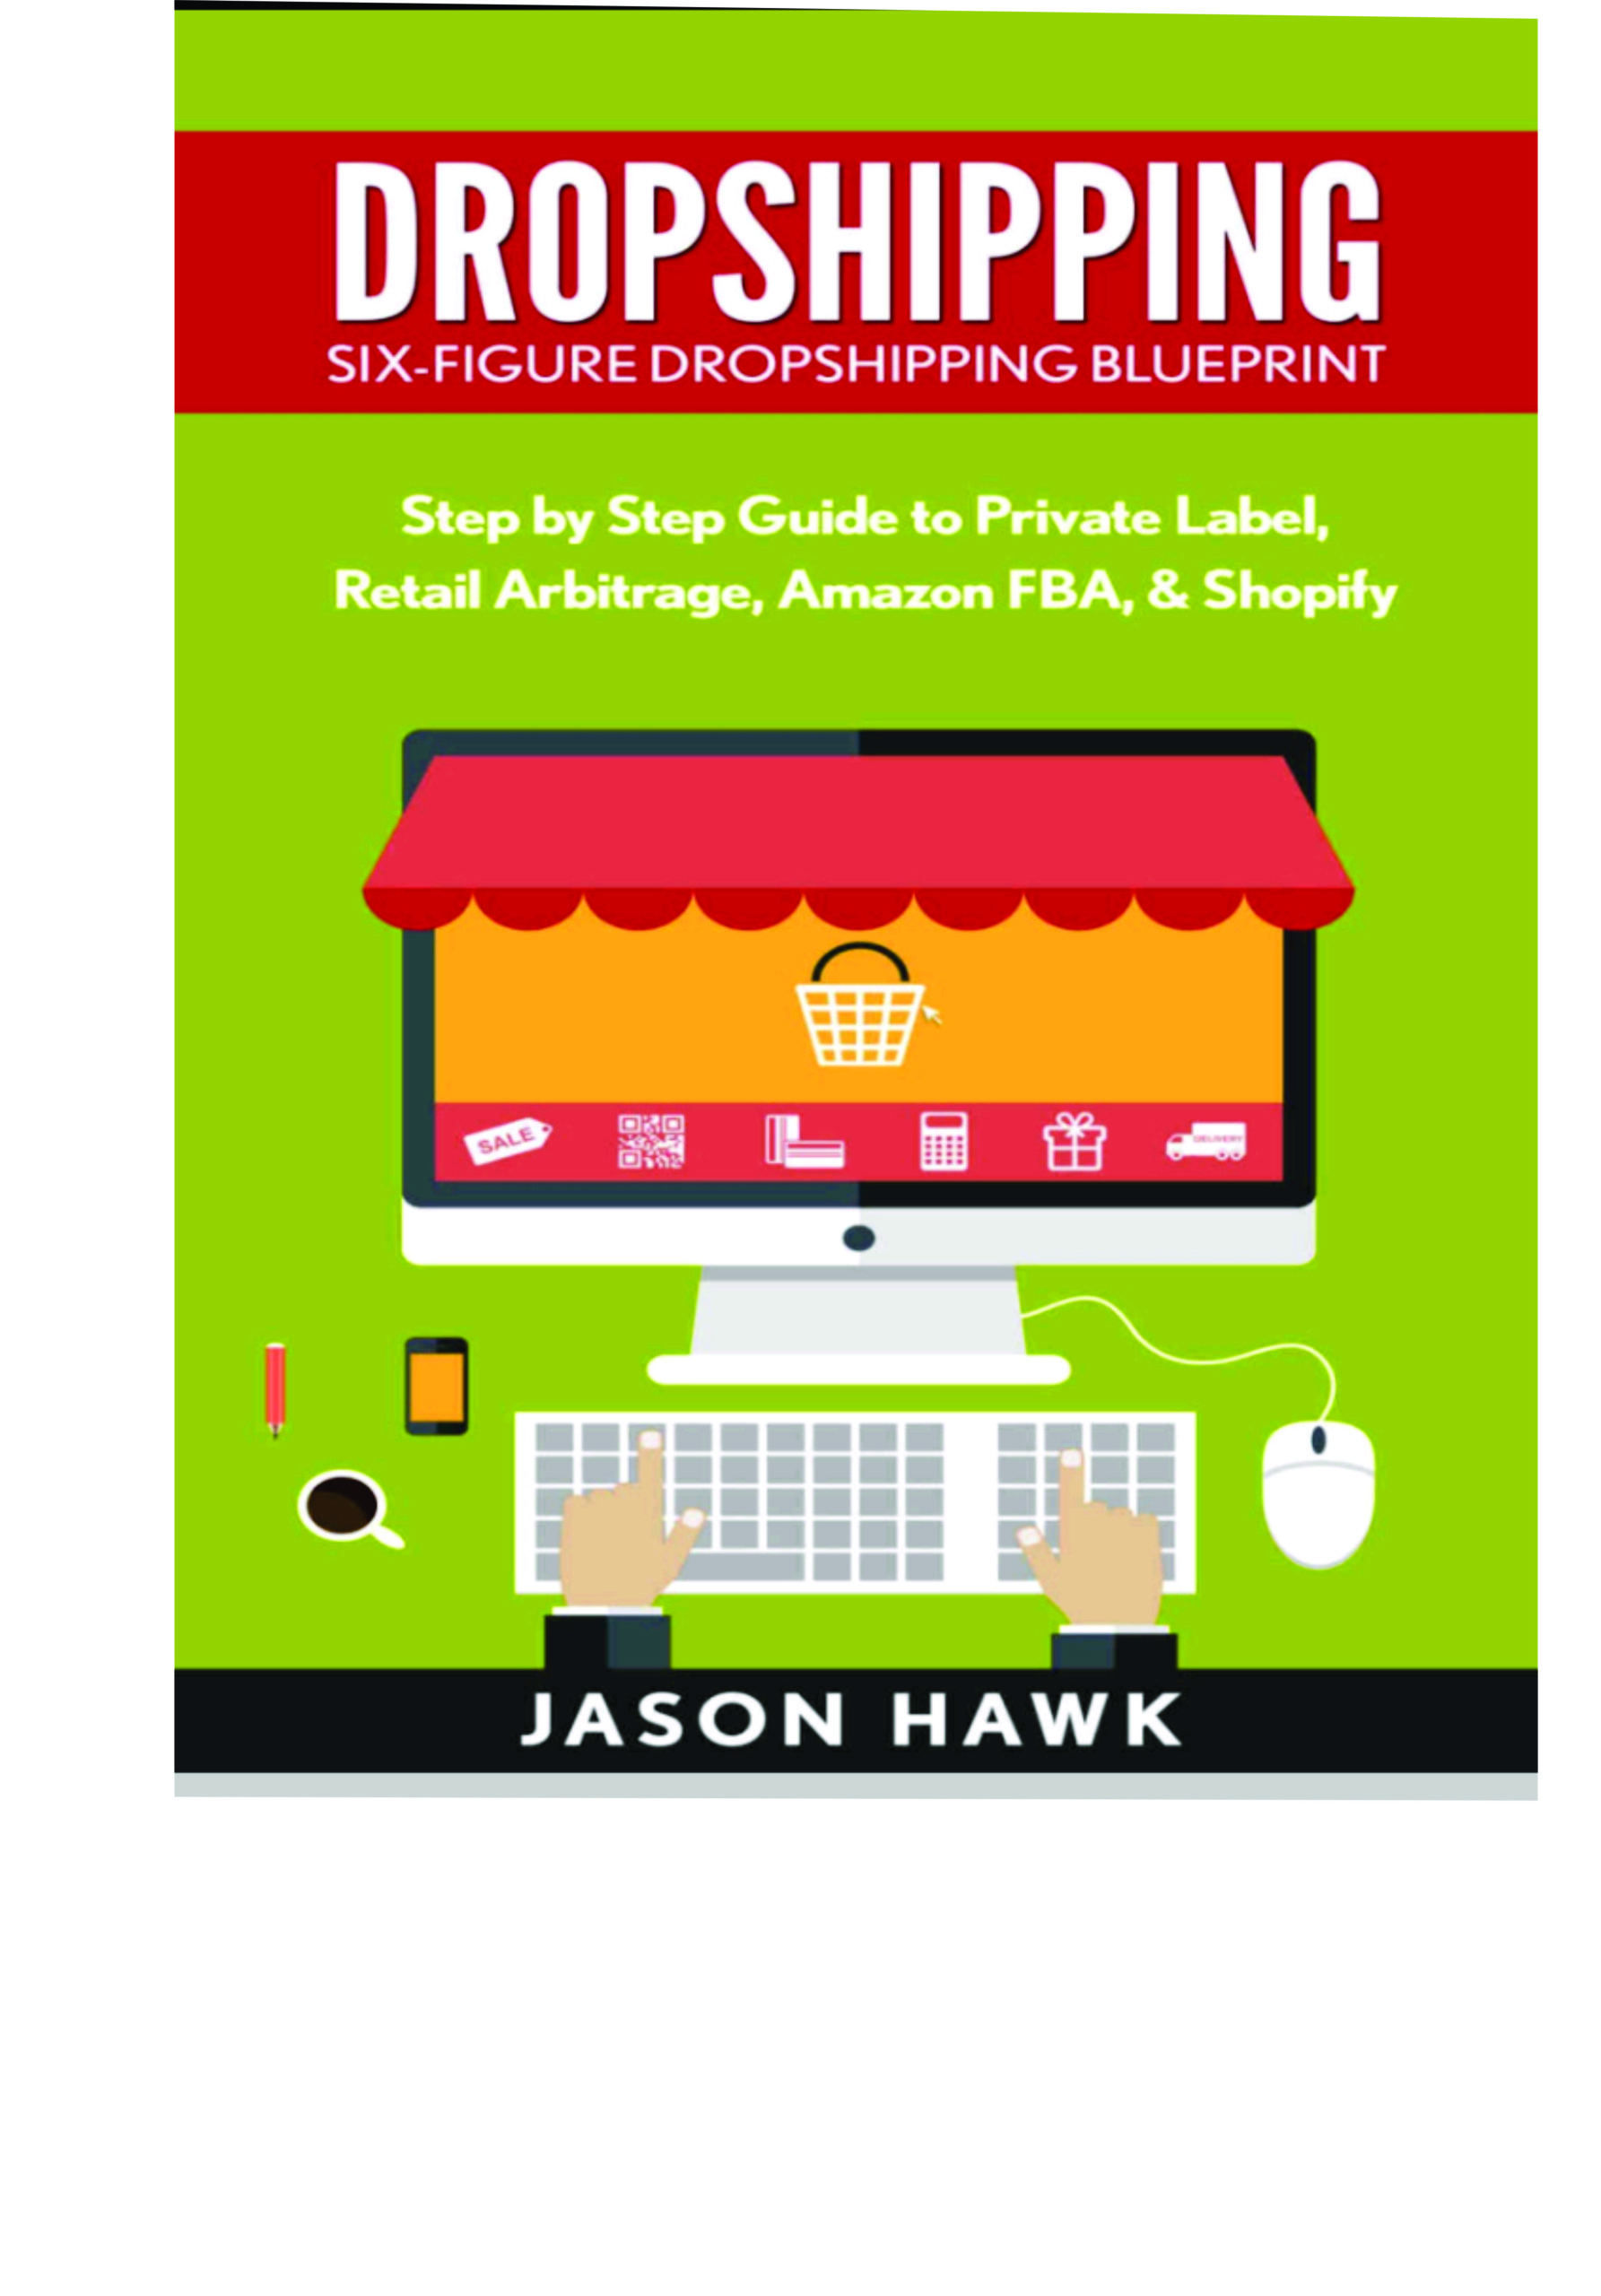 How To Start A Dropshipping Business In Nigeria in 2021 Dropshipping: Six-Figure Dropshipping Blueprint